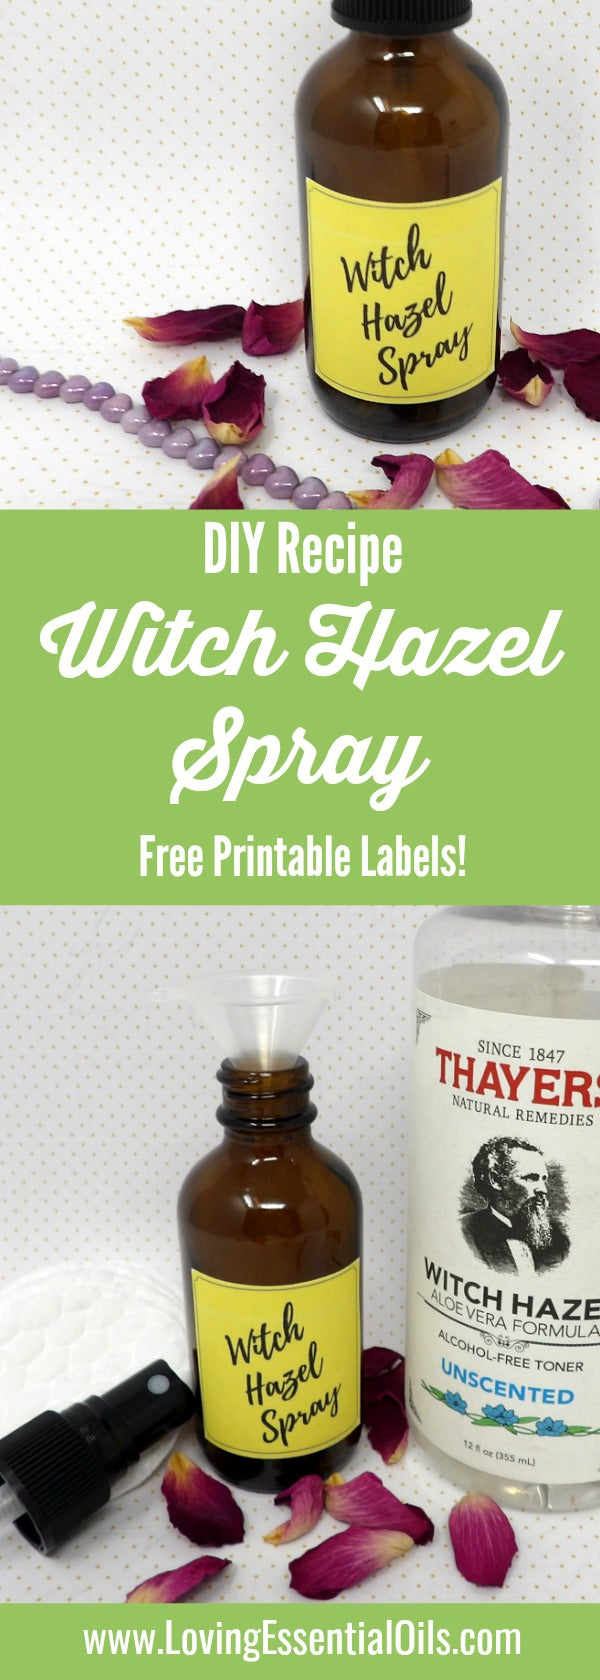 Witch Hazel Spray For Healthy Skin by Loving Essential Oils